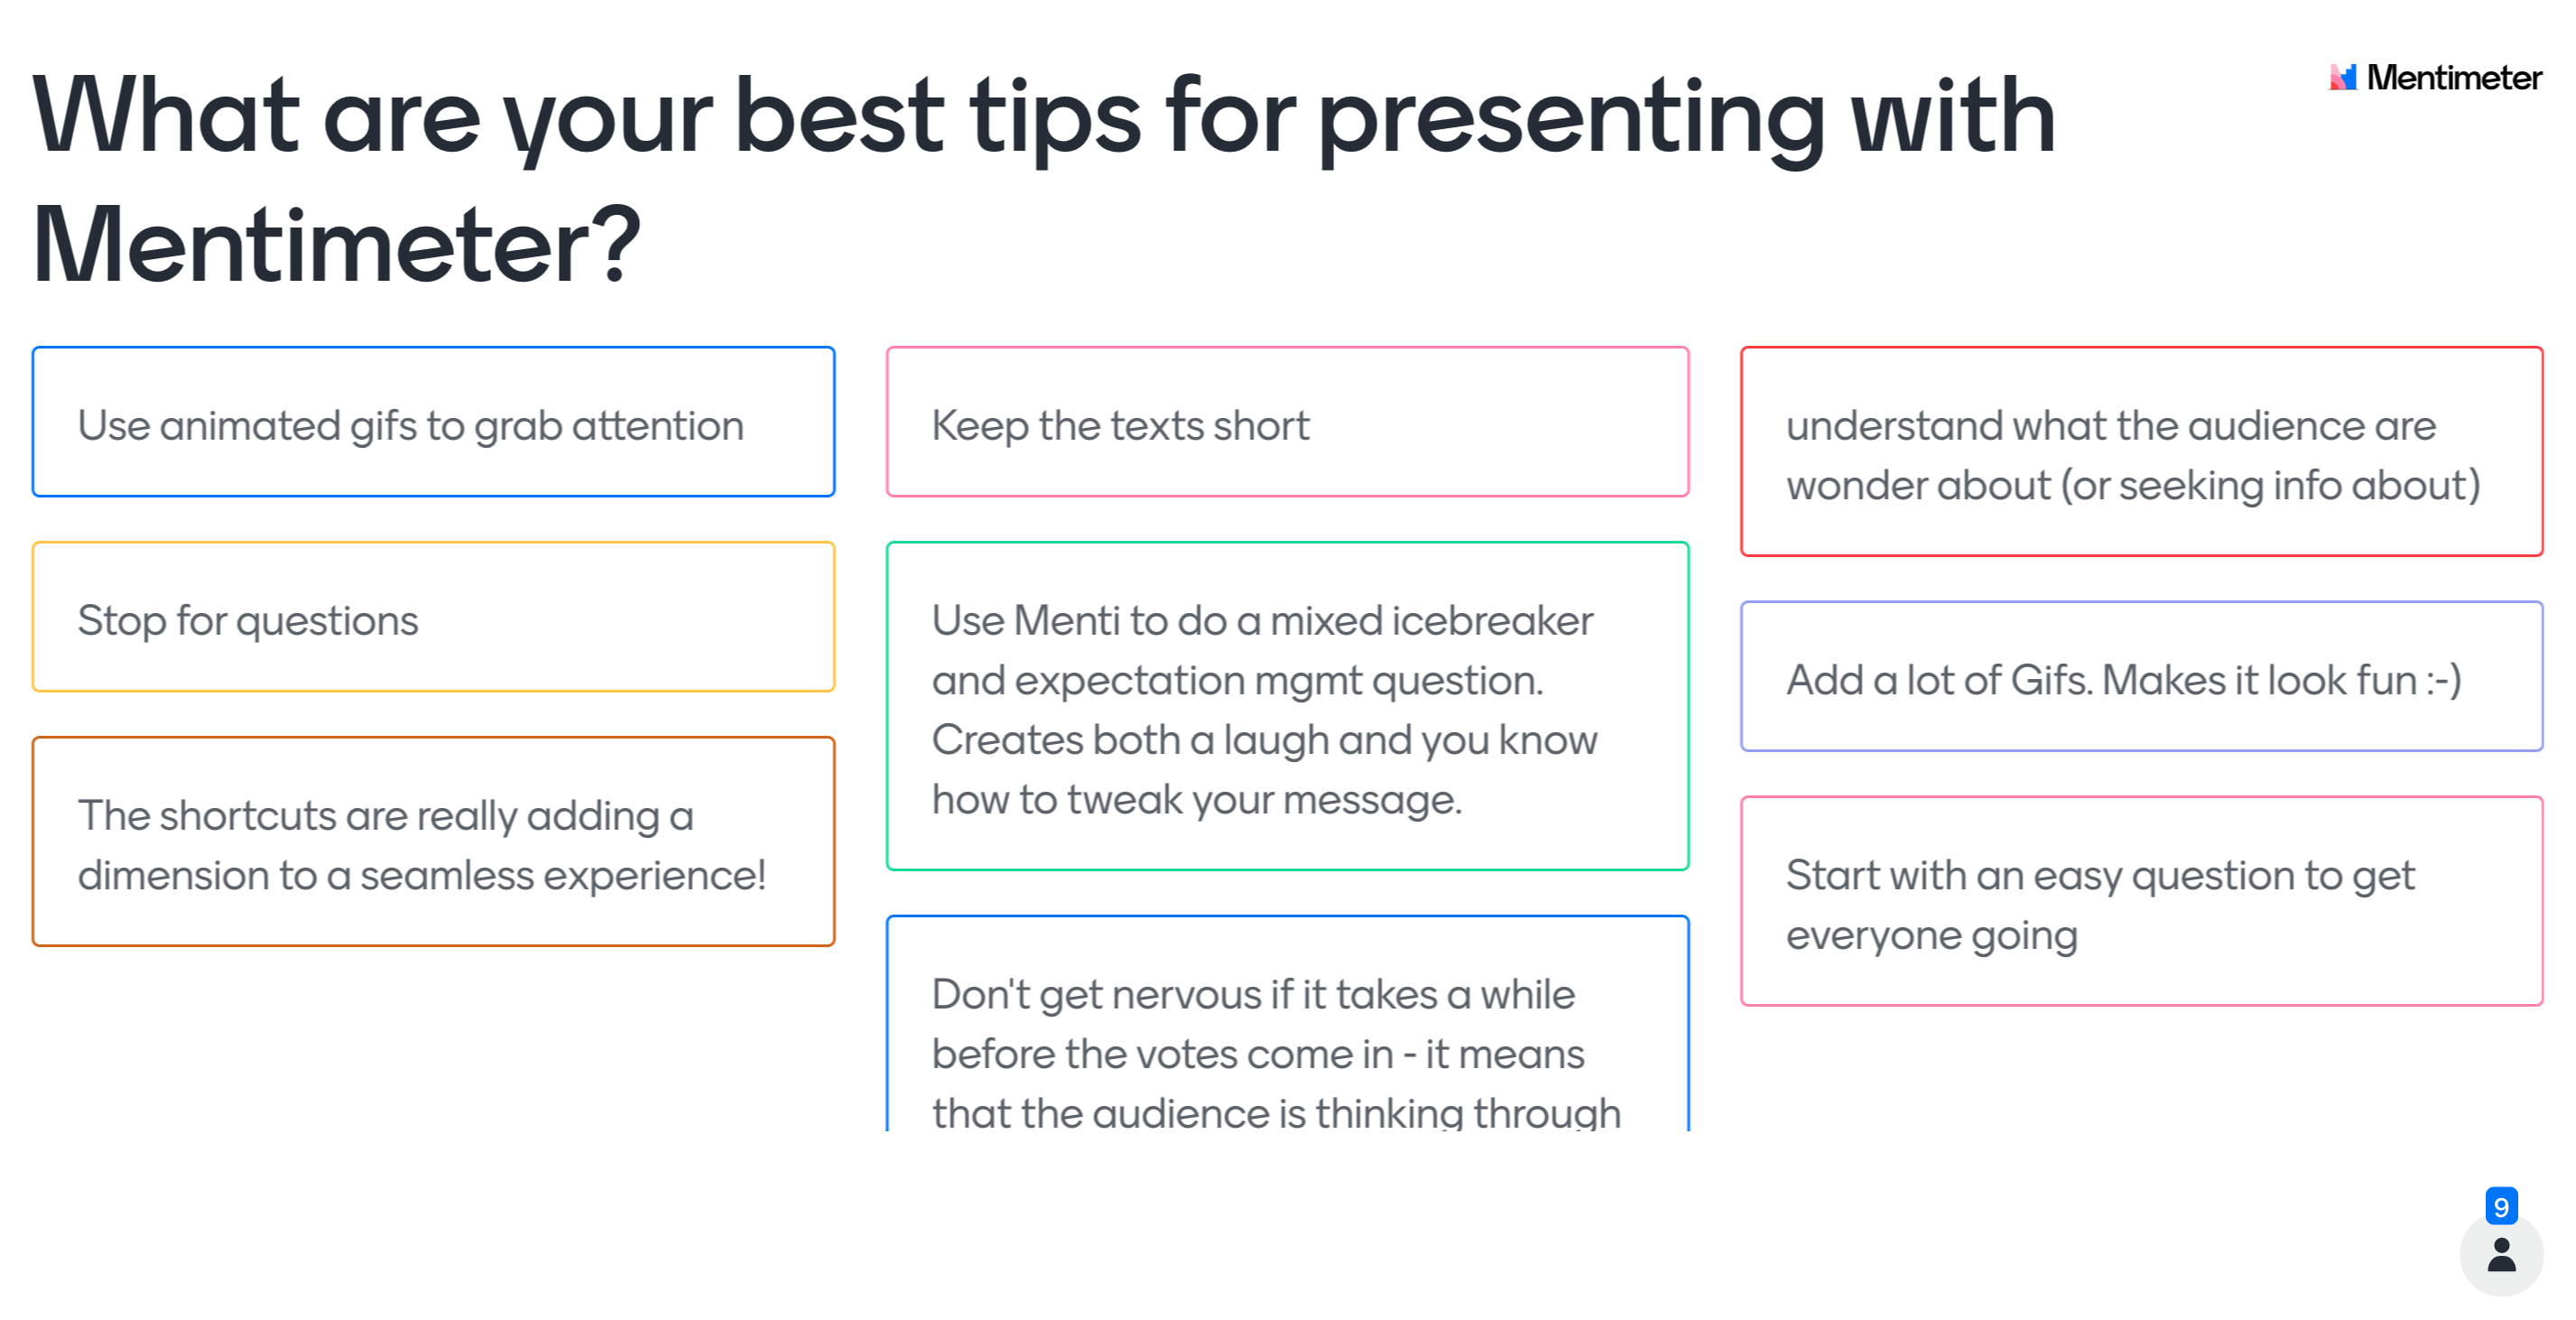 What are your best tips for presenting with Mentimeter?